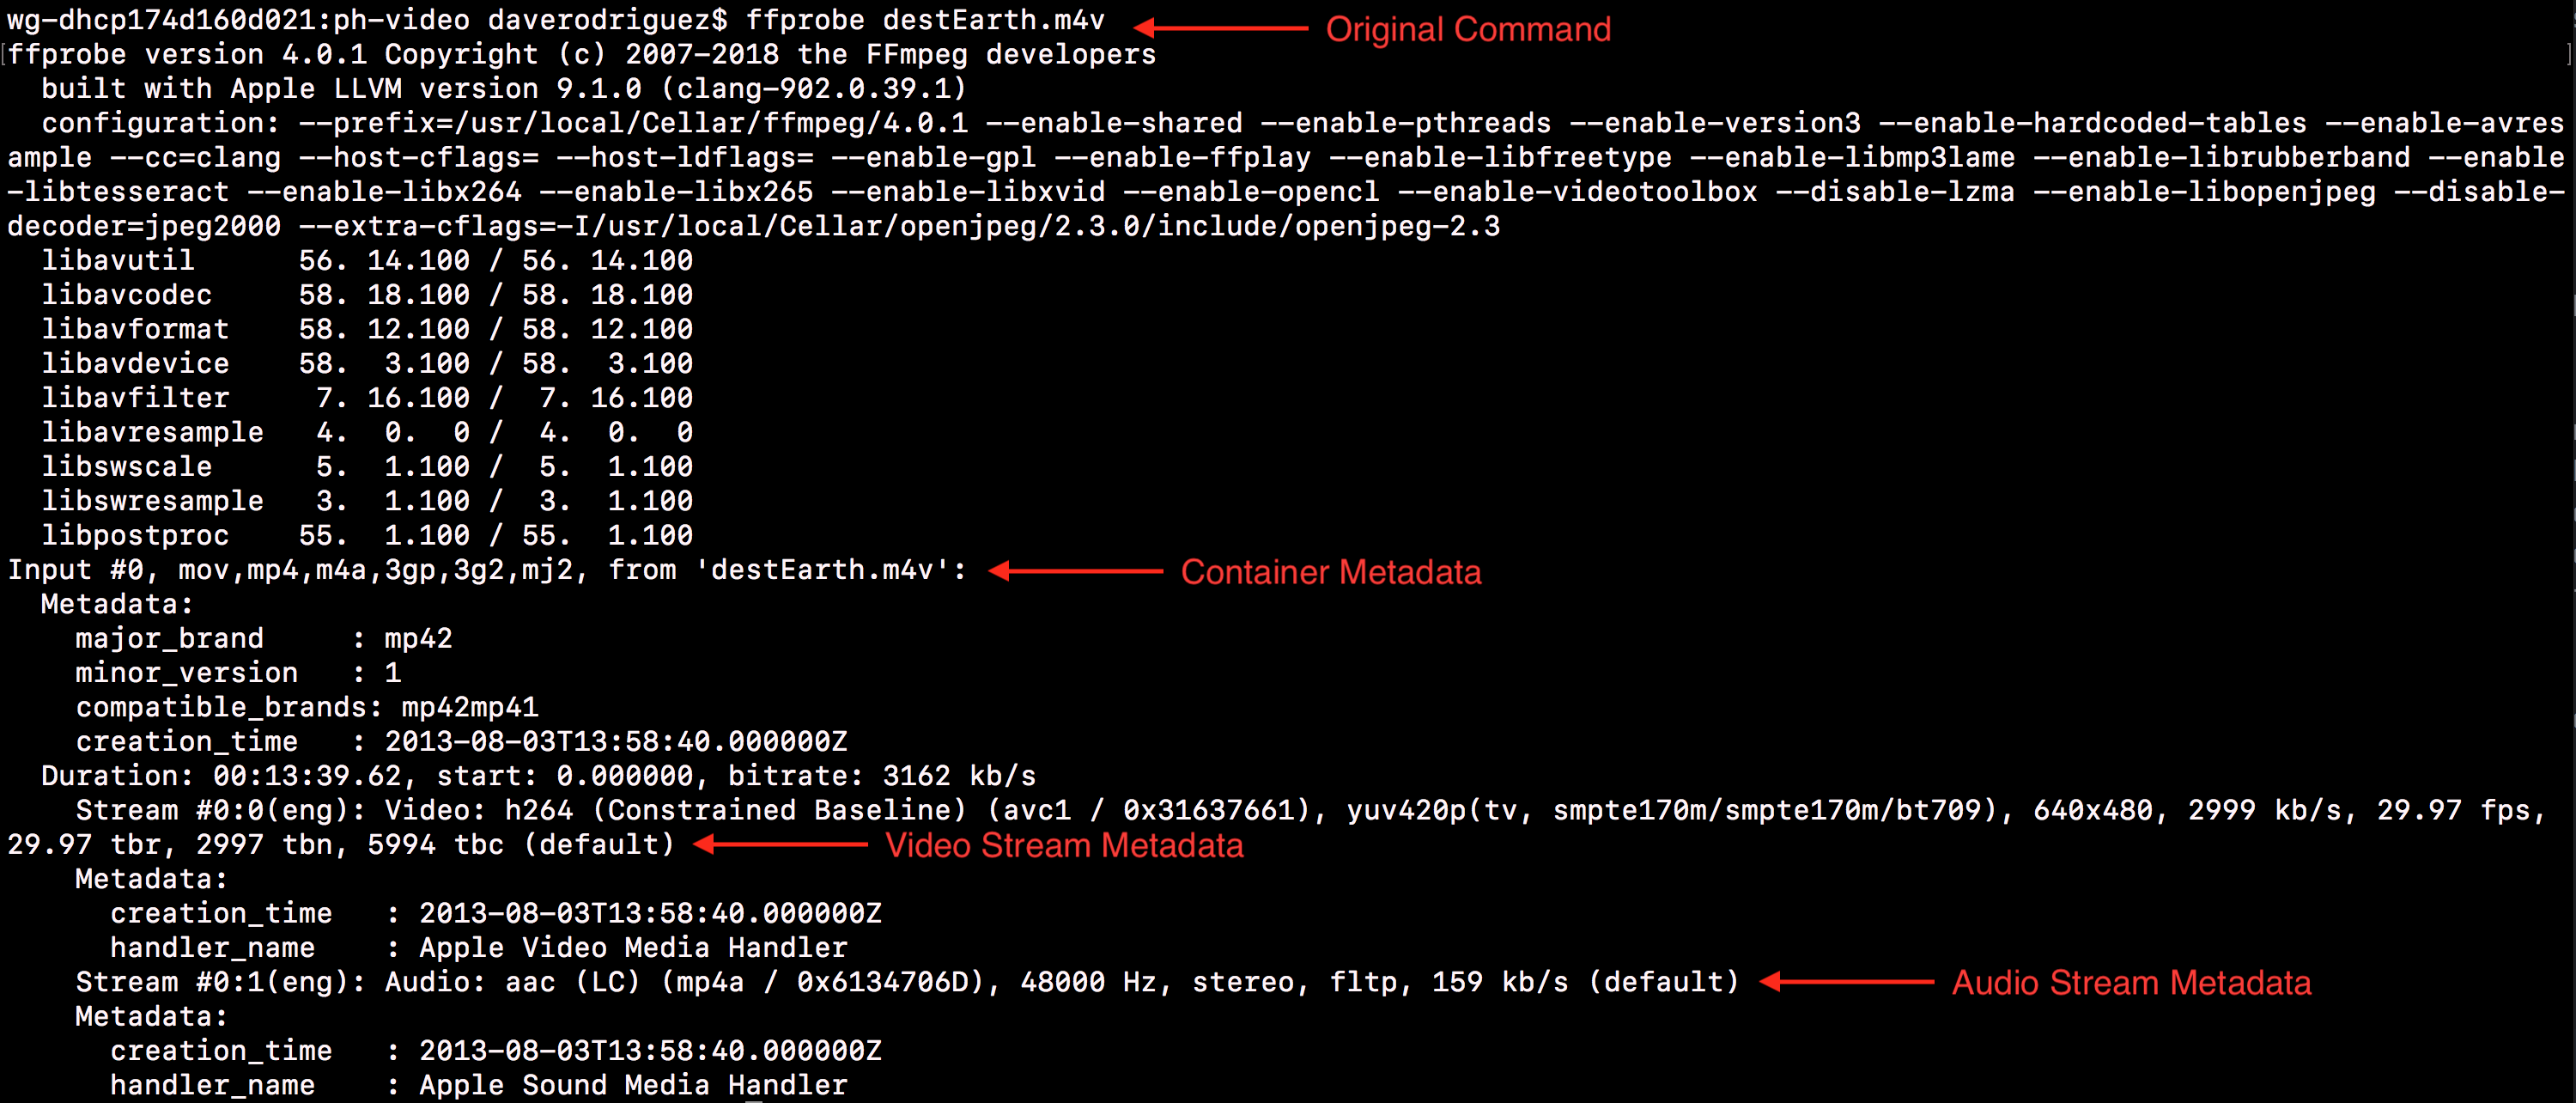 The output of a basic `ffprobe` command with destEarth.m4v